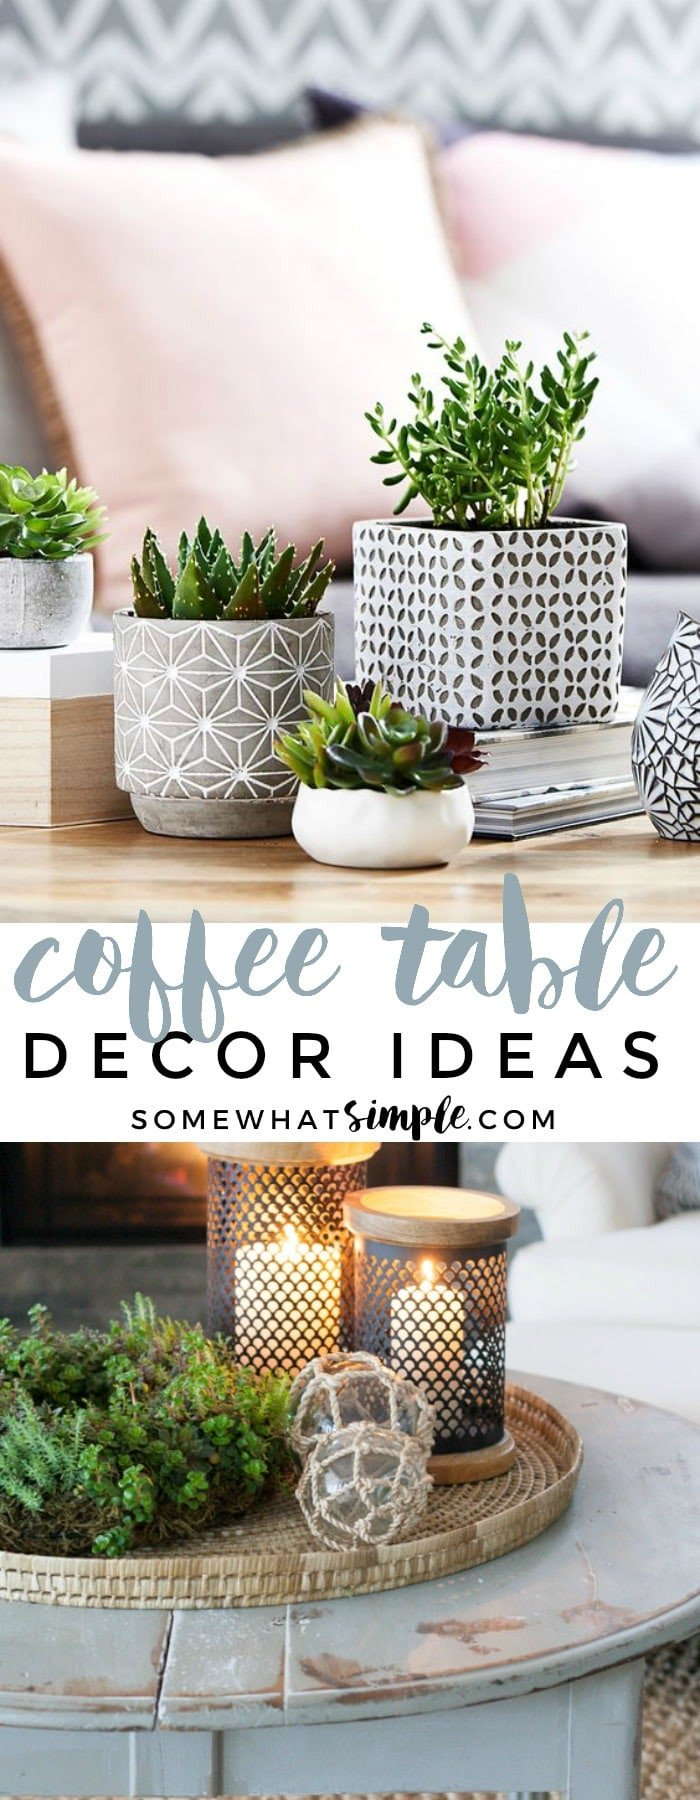 Ideas for Coffee Table Decor Fresh 5 Styling Tips and Coffee Table Decor Ideas somewhat Simple